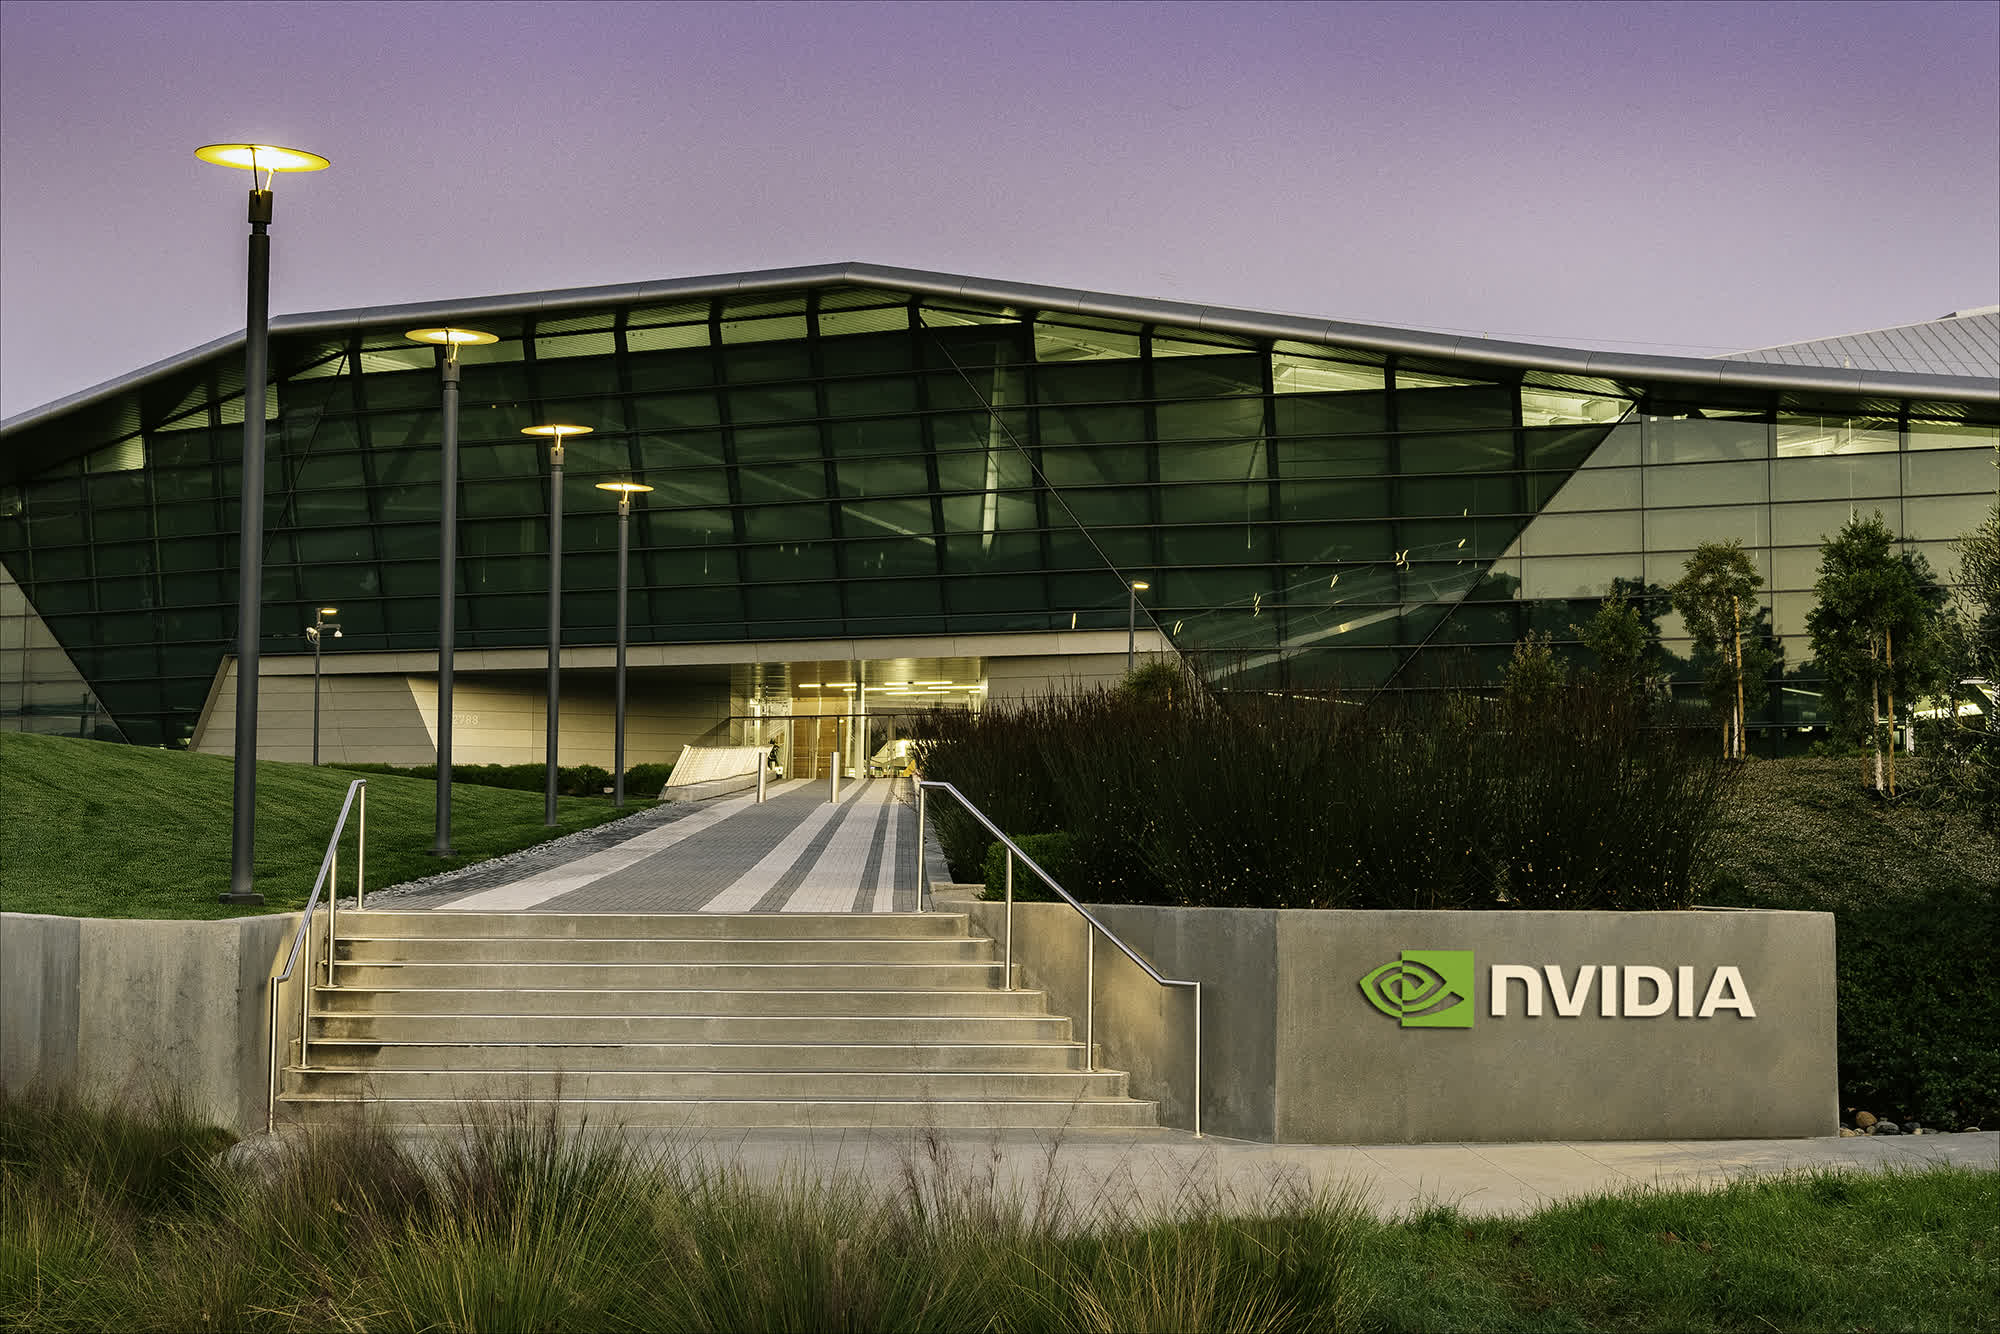 If Nvidia doesn't complete Arm acquisition, the latter might consider an IPO